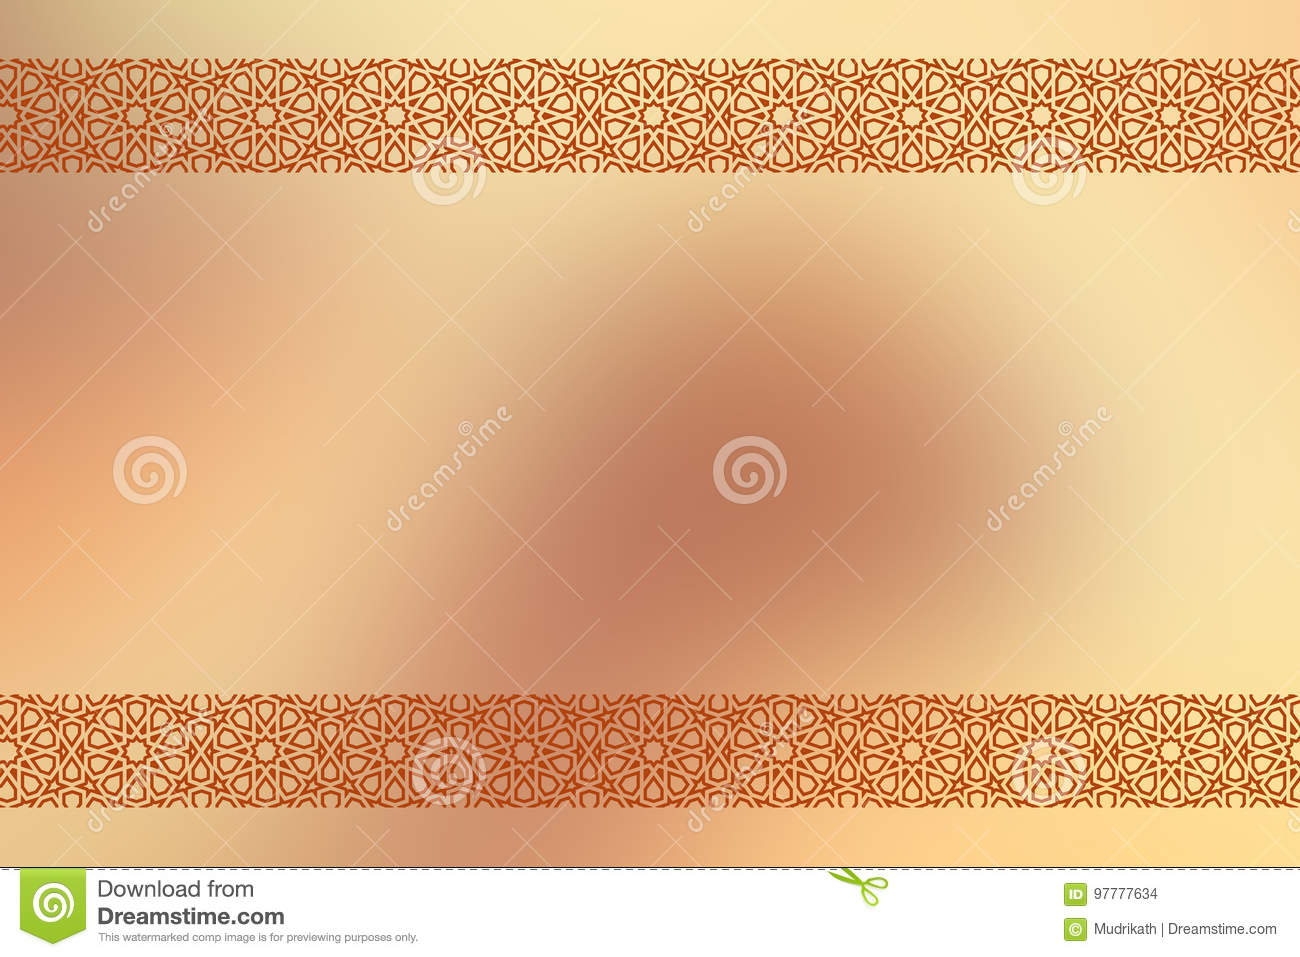 Wedding Card Or Party Card Template- 21 JULY 2017. Stock Illustration -  Illustration of artistic, composition: 97777634